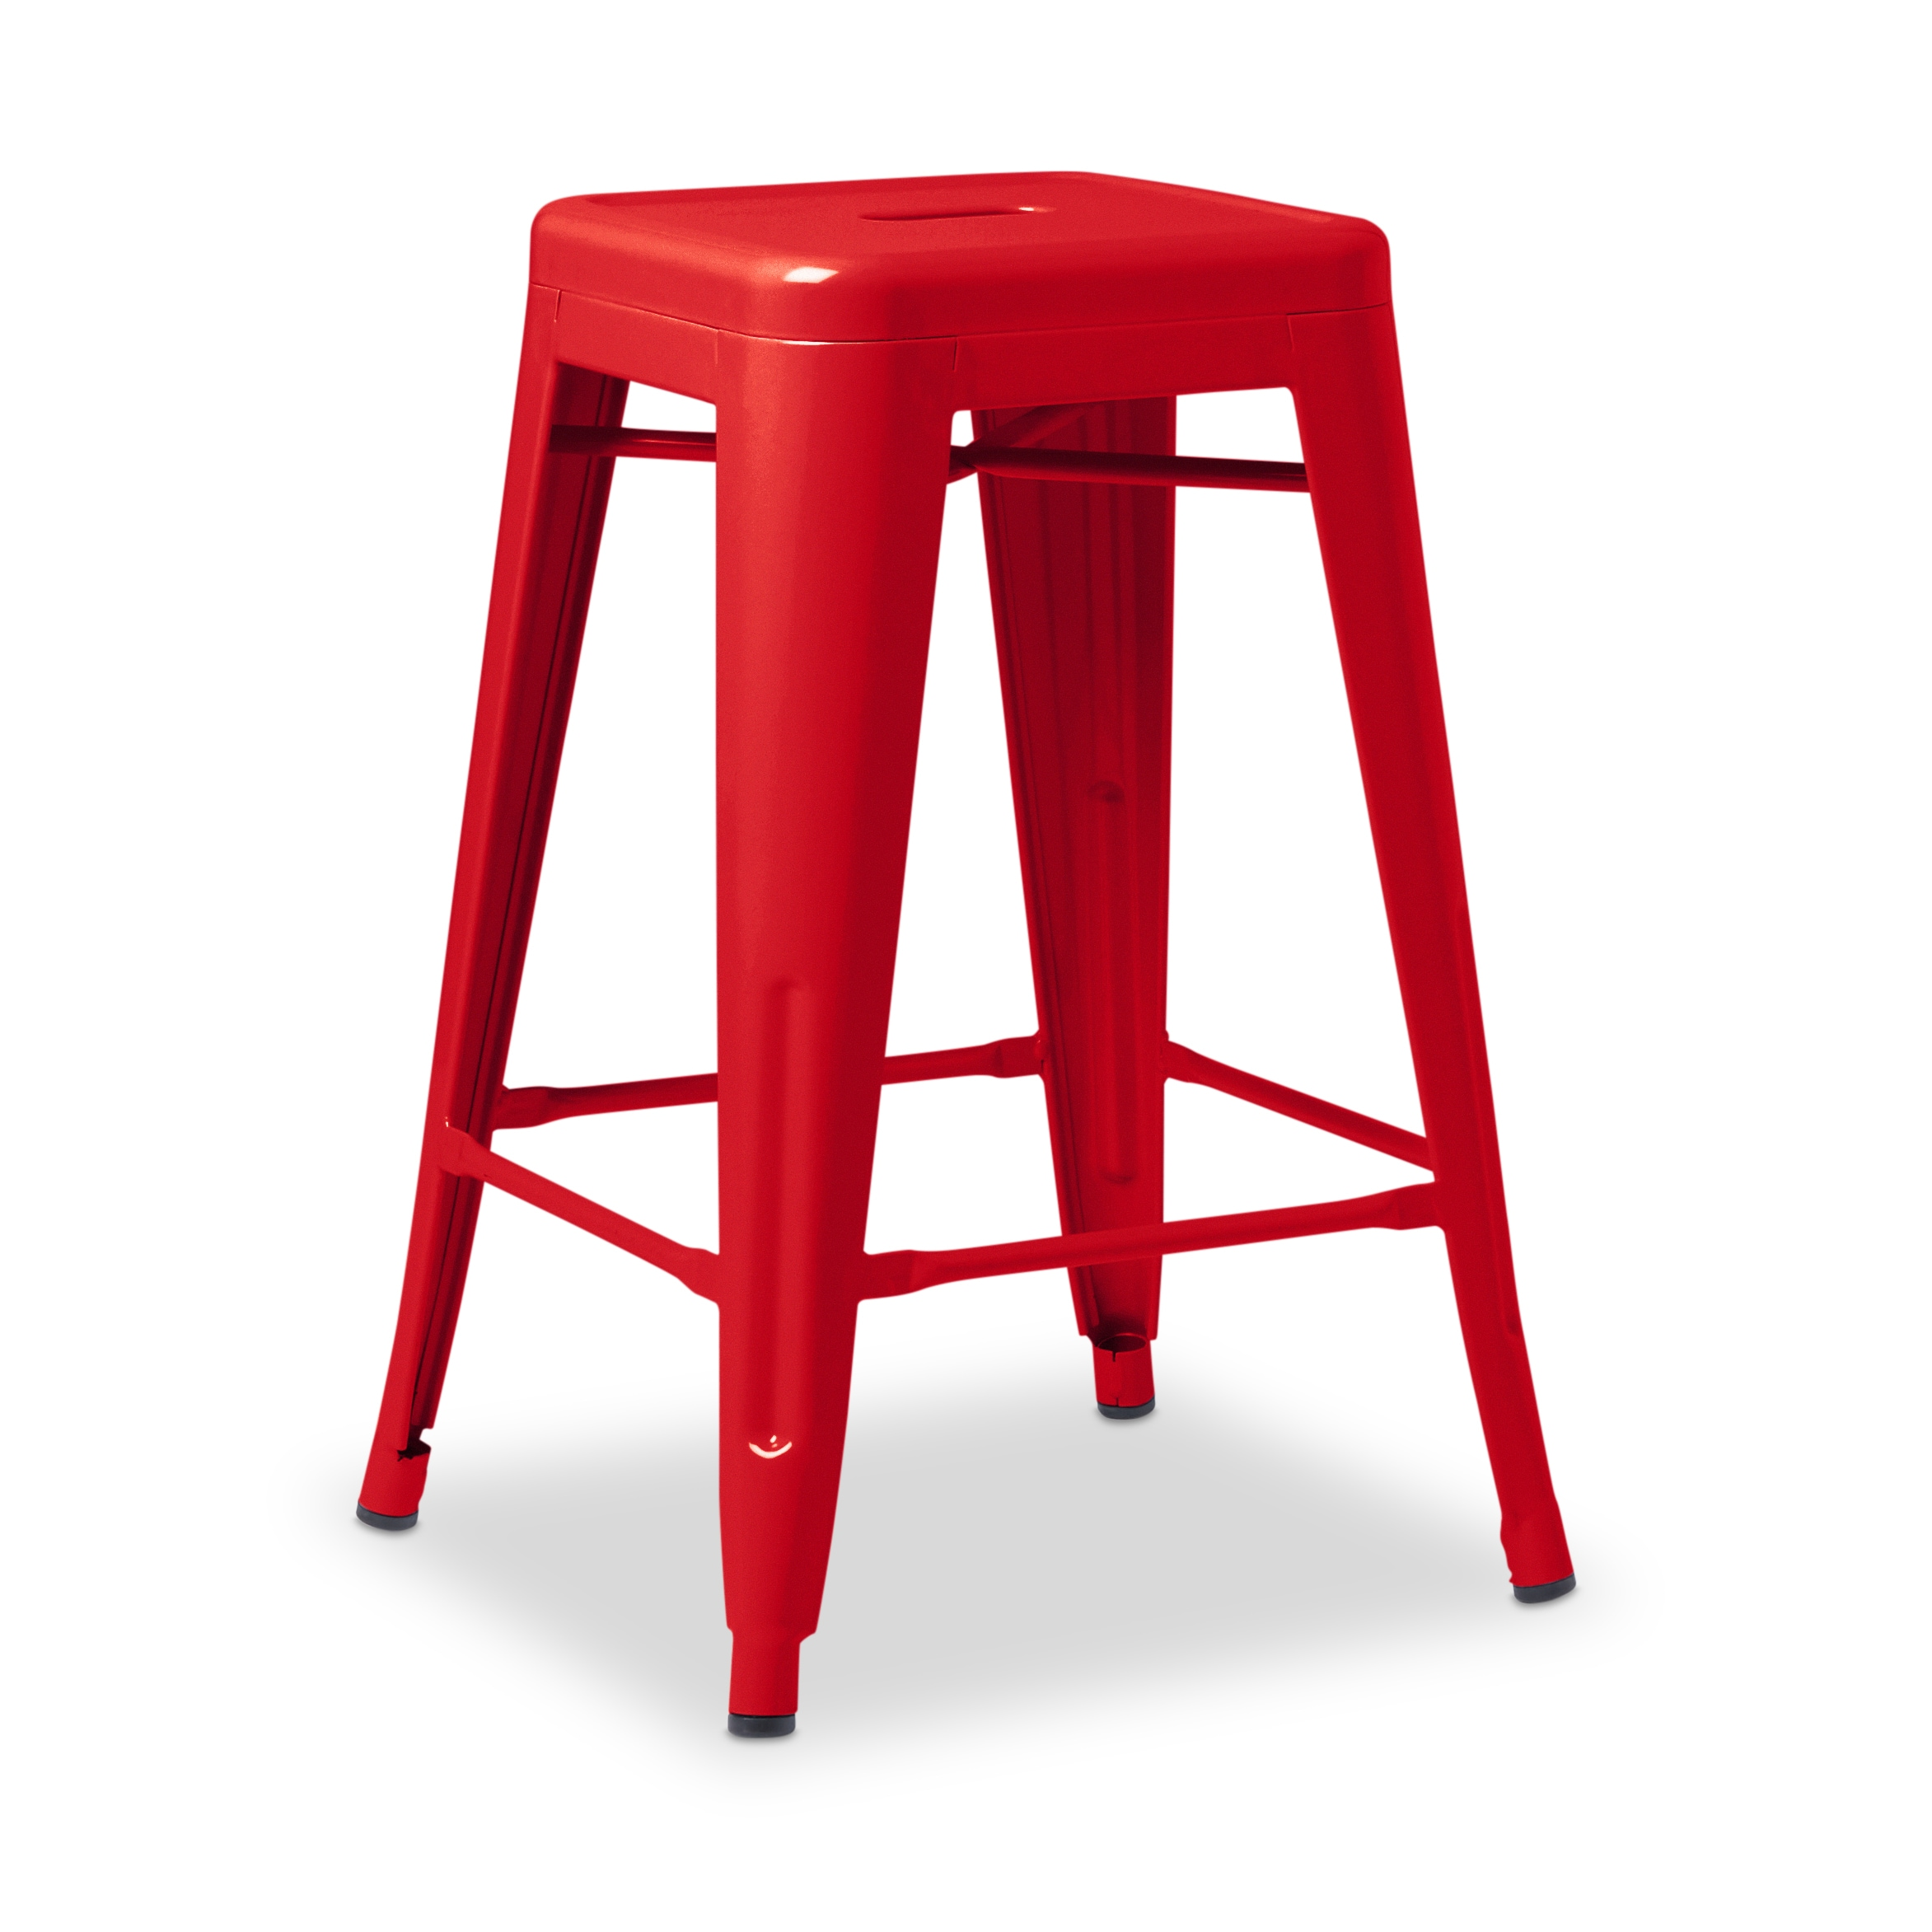 islands best for red buying guide metal breakfast bars ashley stool milton oak elegant dining and bar kitchen seating laura reviews stools